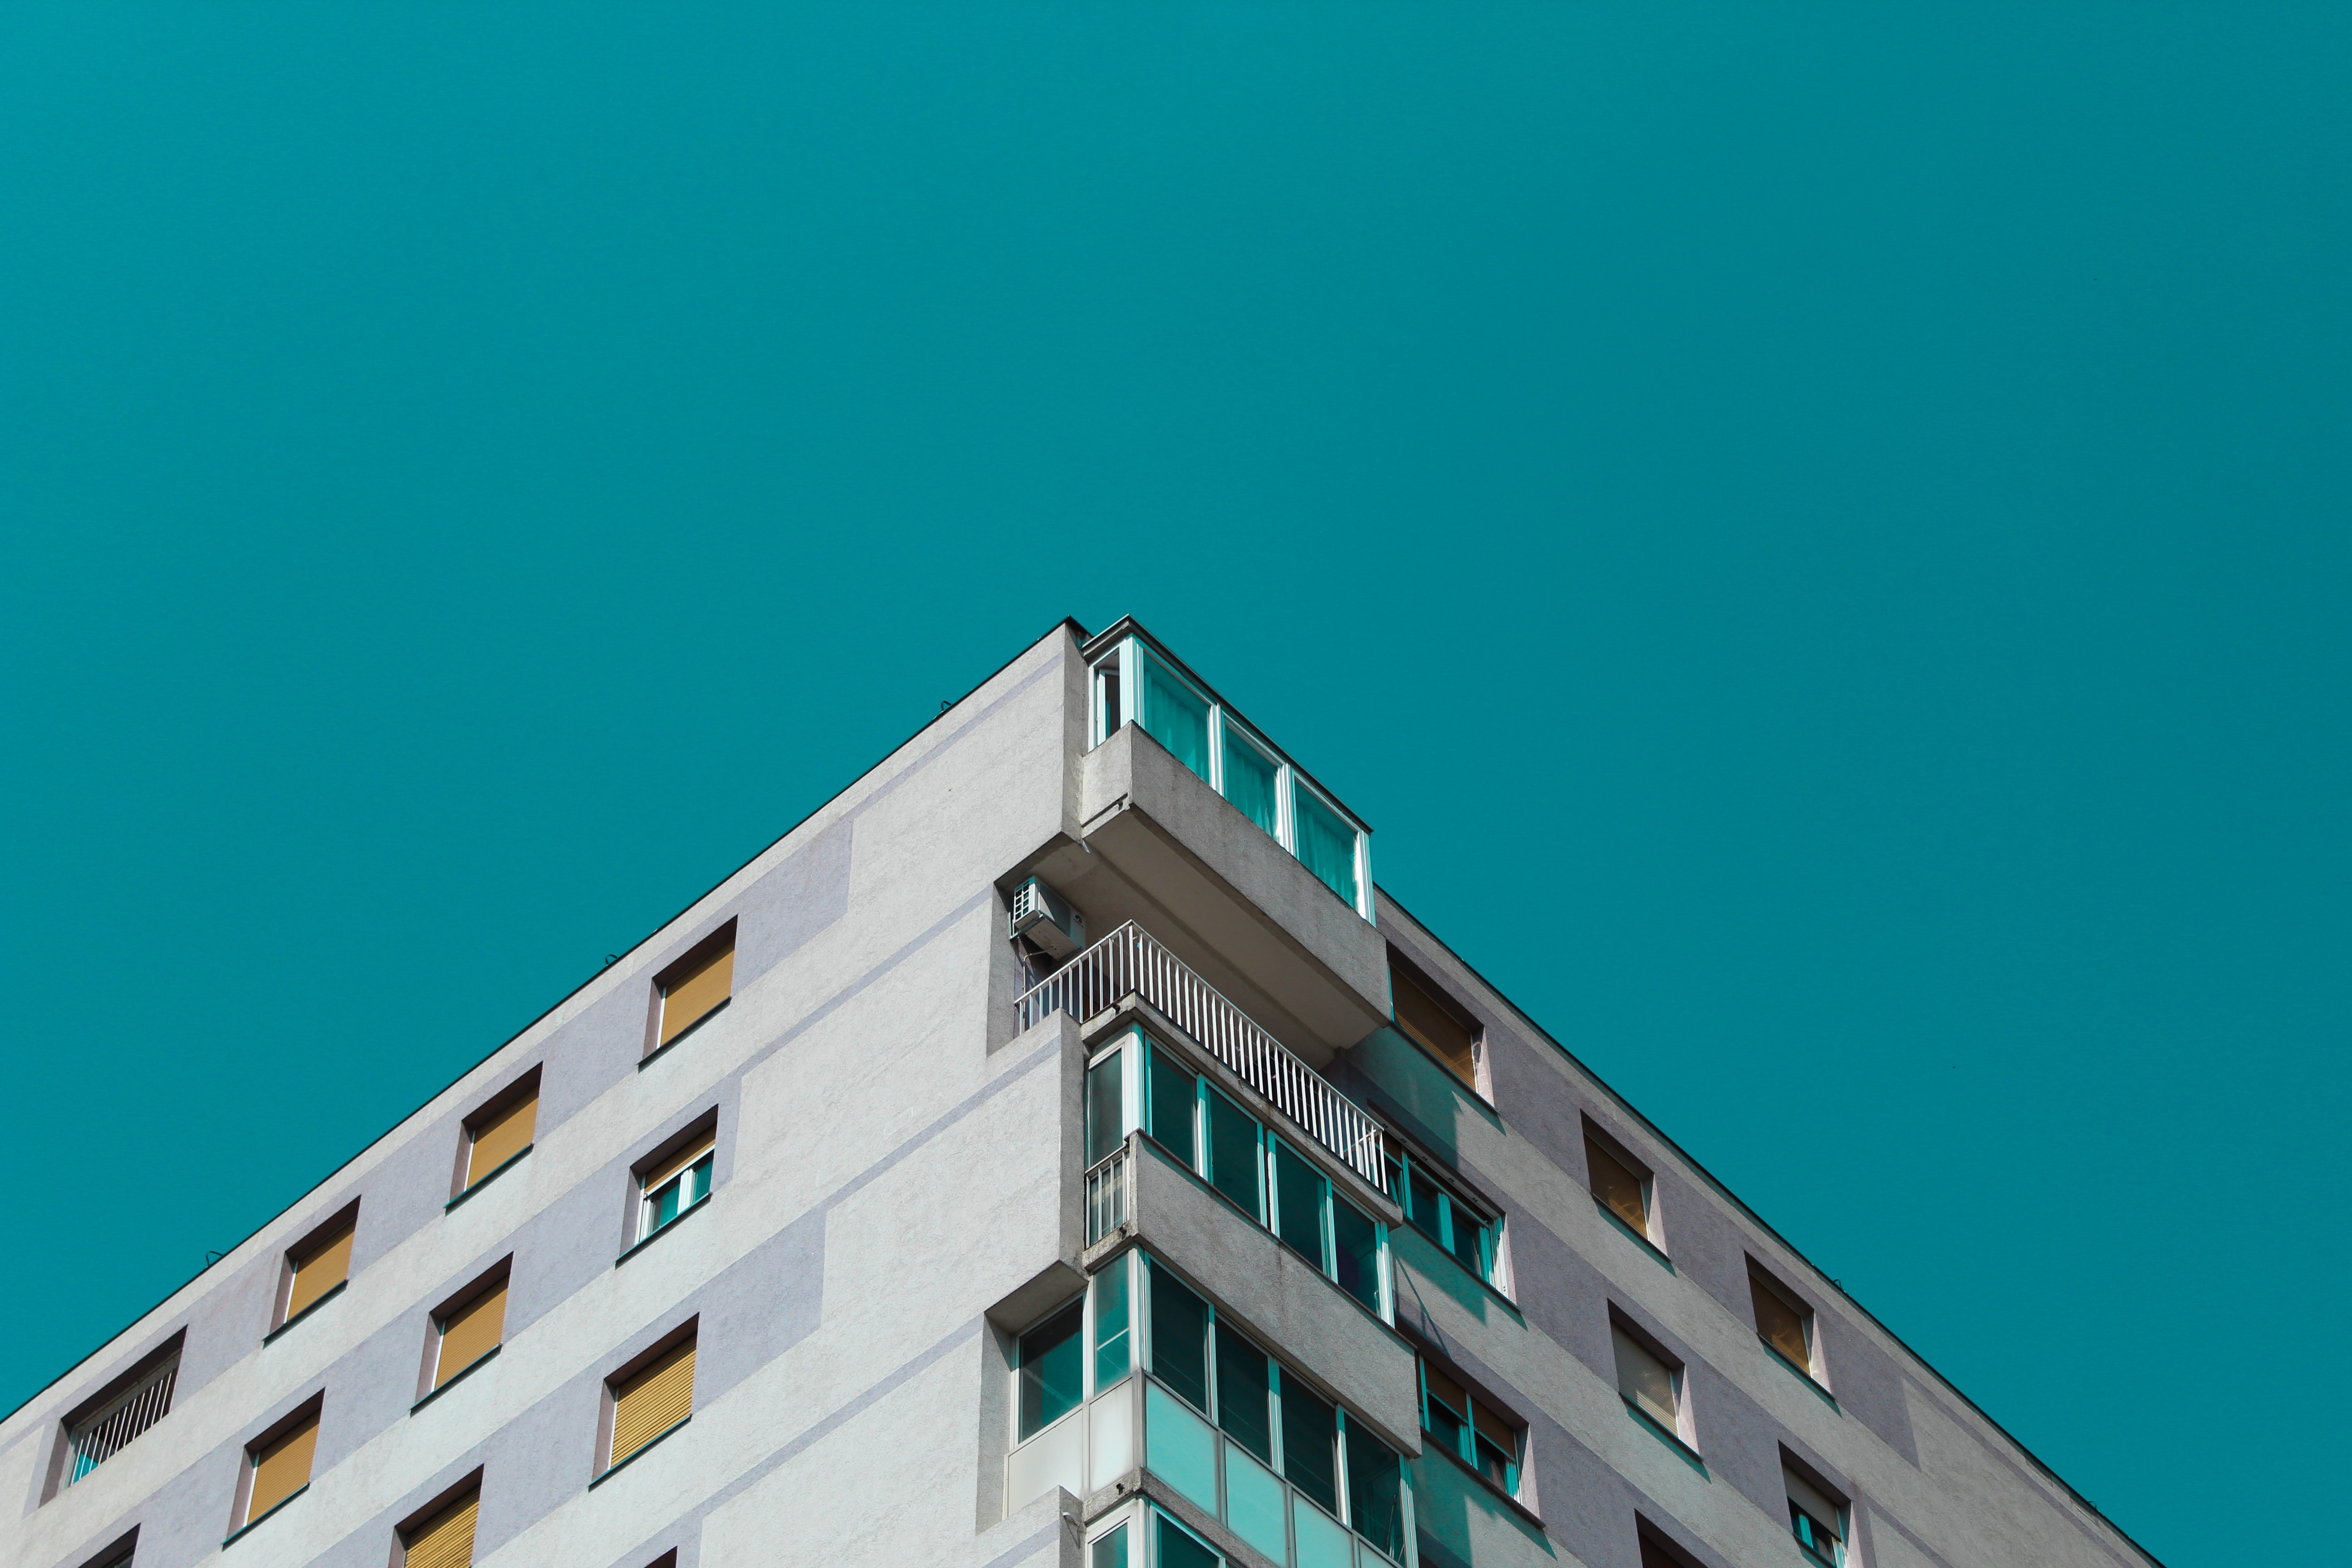 minimalist photography of high-rise building